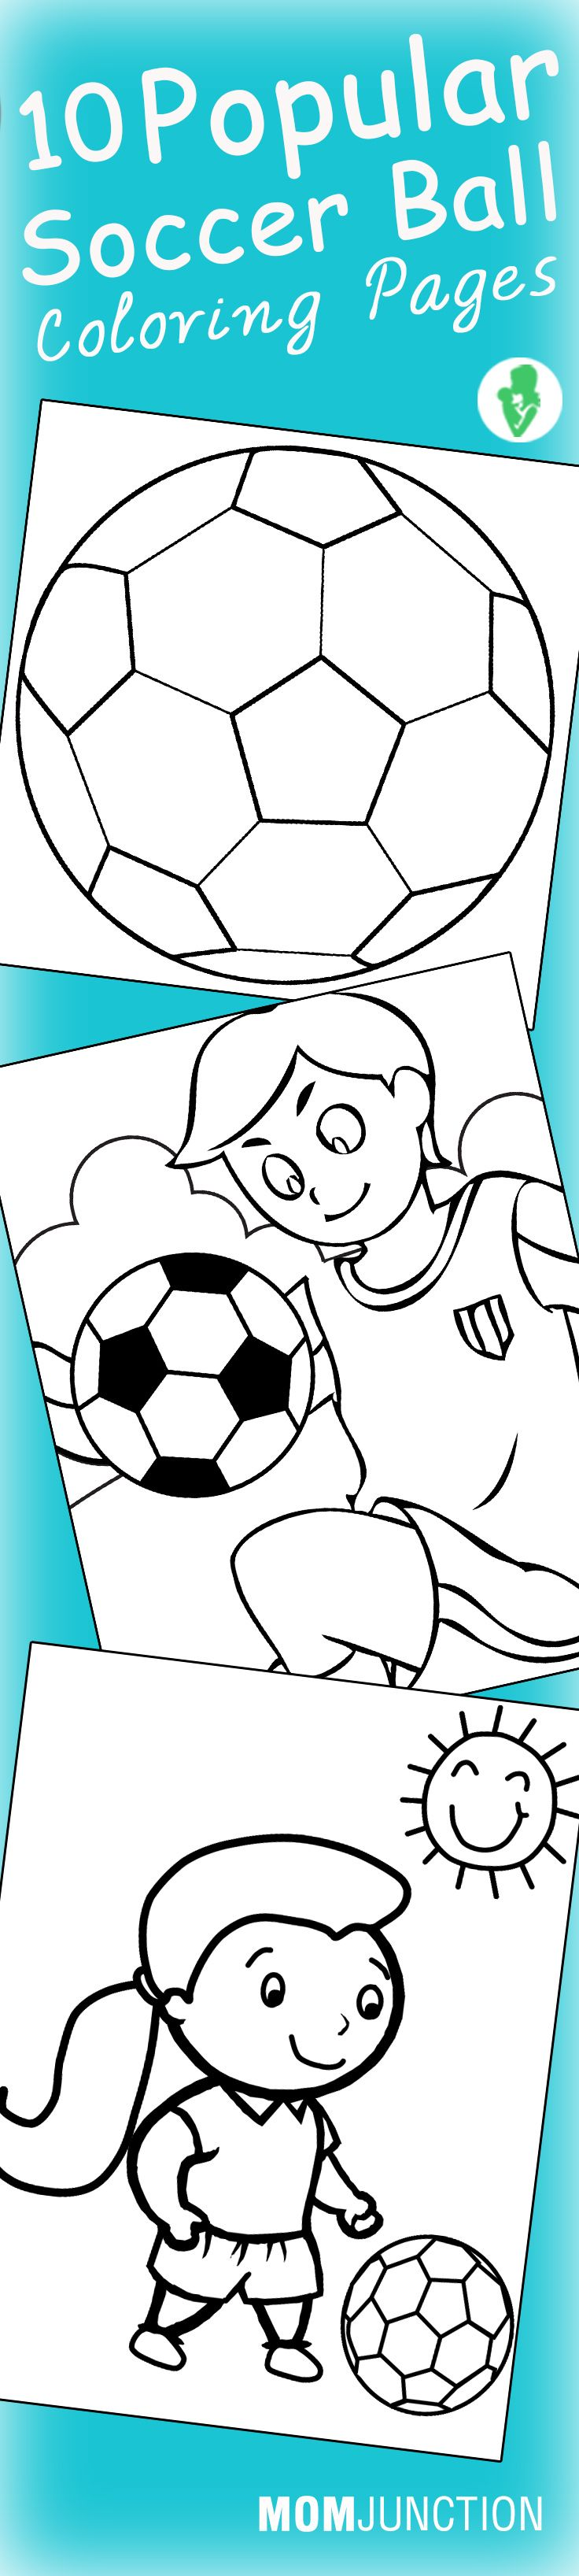 Soccer Ball Coloring Pages - Free Printables | Pinterest | Soccer ...